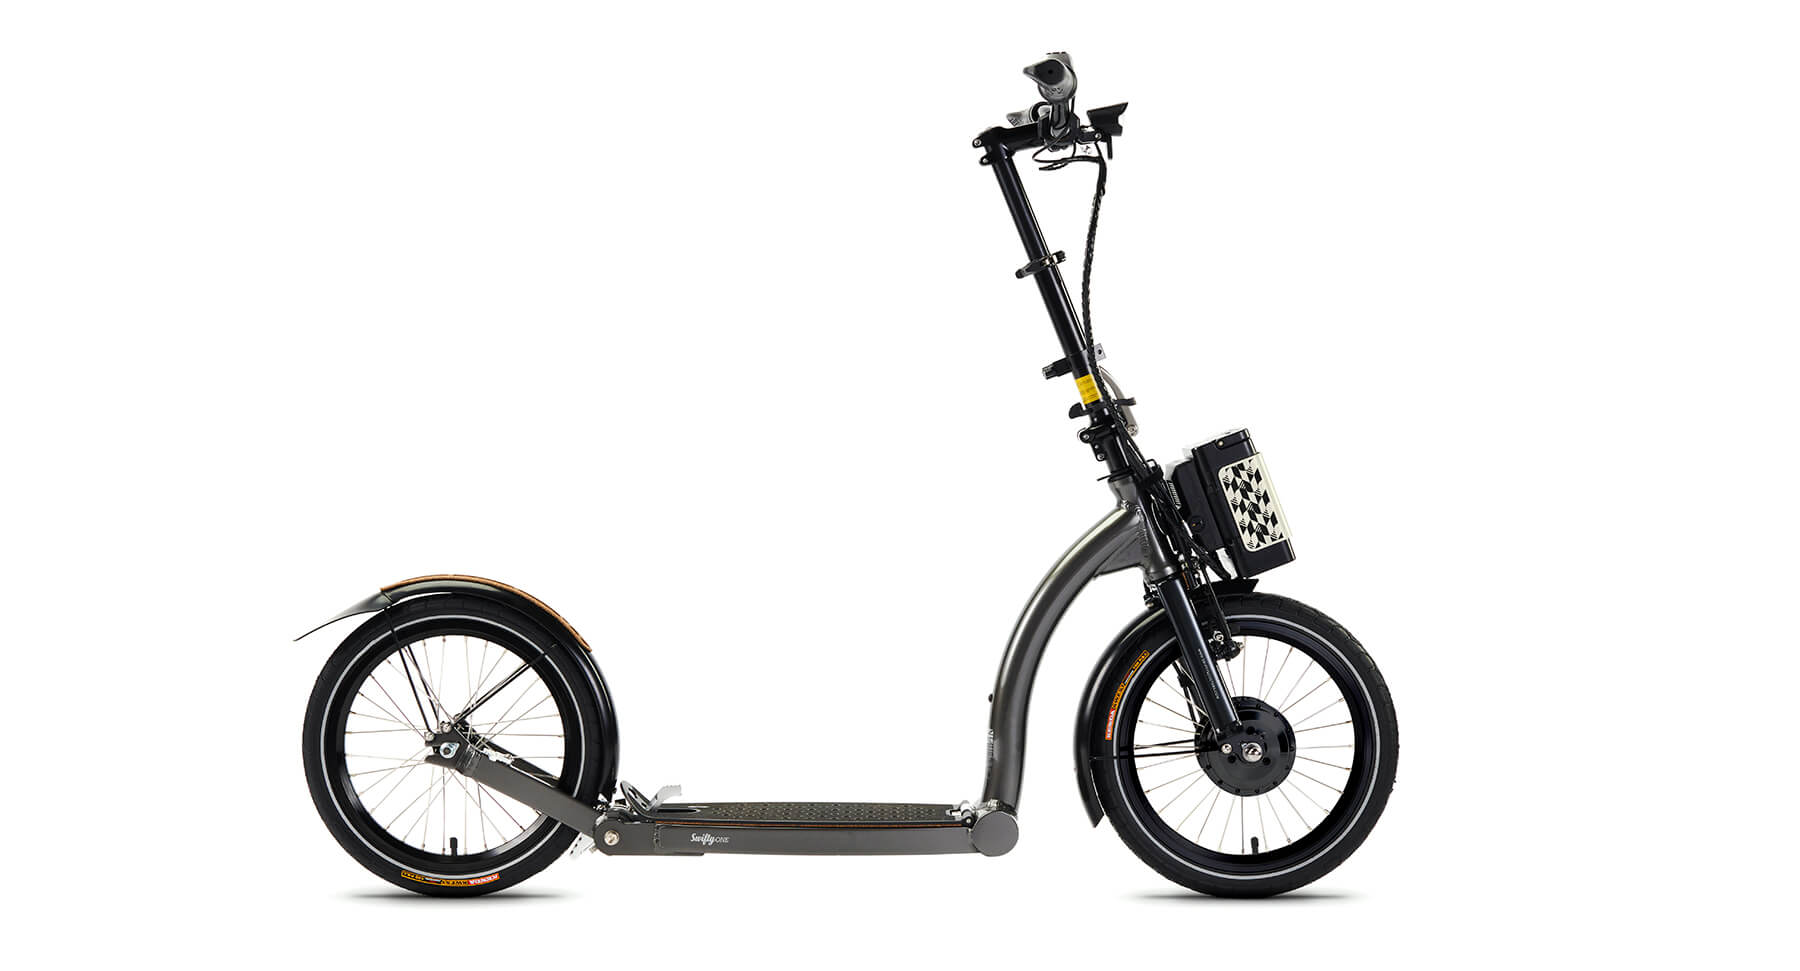 big wheel electric scooter, electric scooter for heavy adults uk, electric wheel scooter